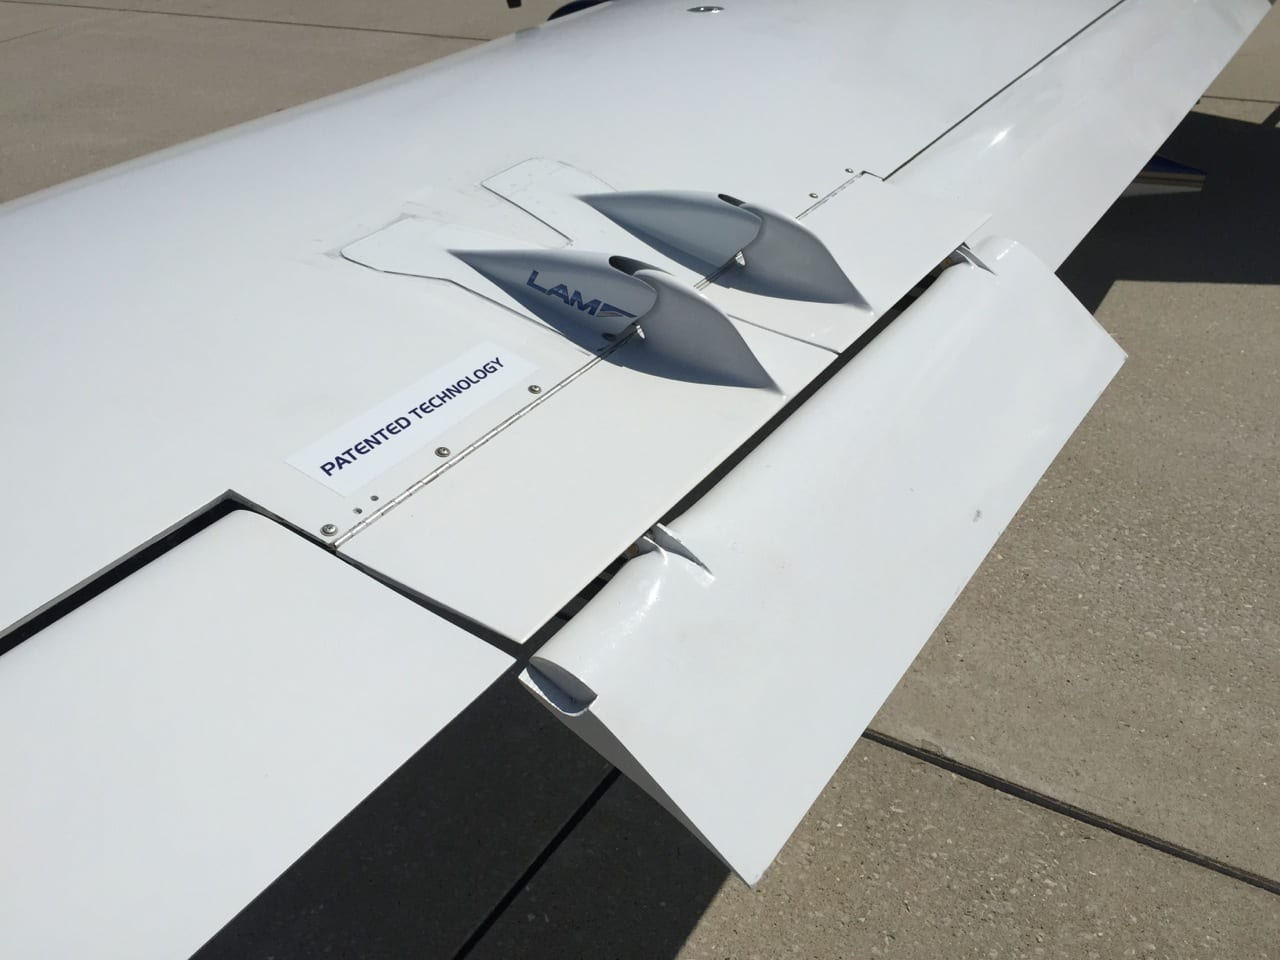 LAM Aviation introduces wing flight control system